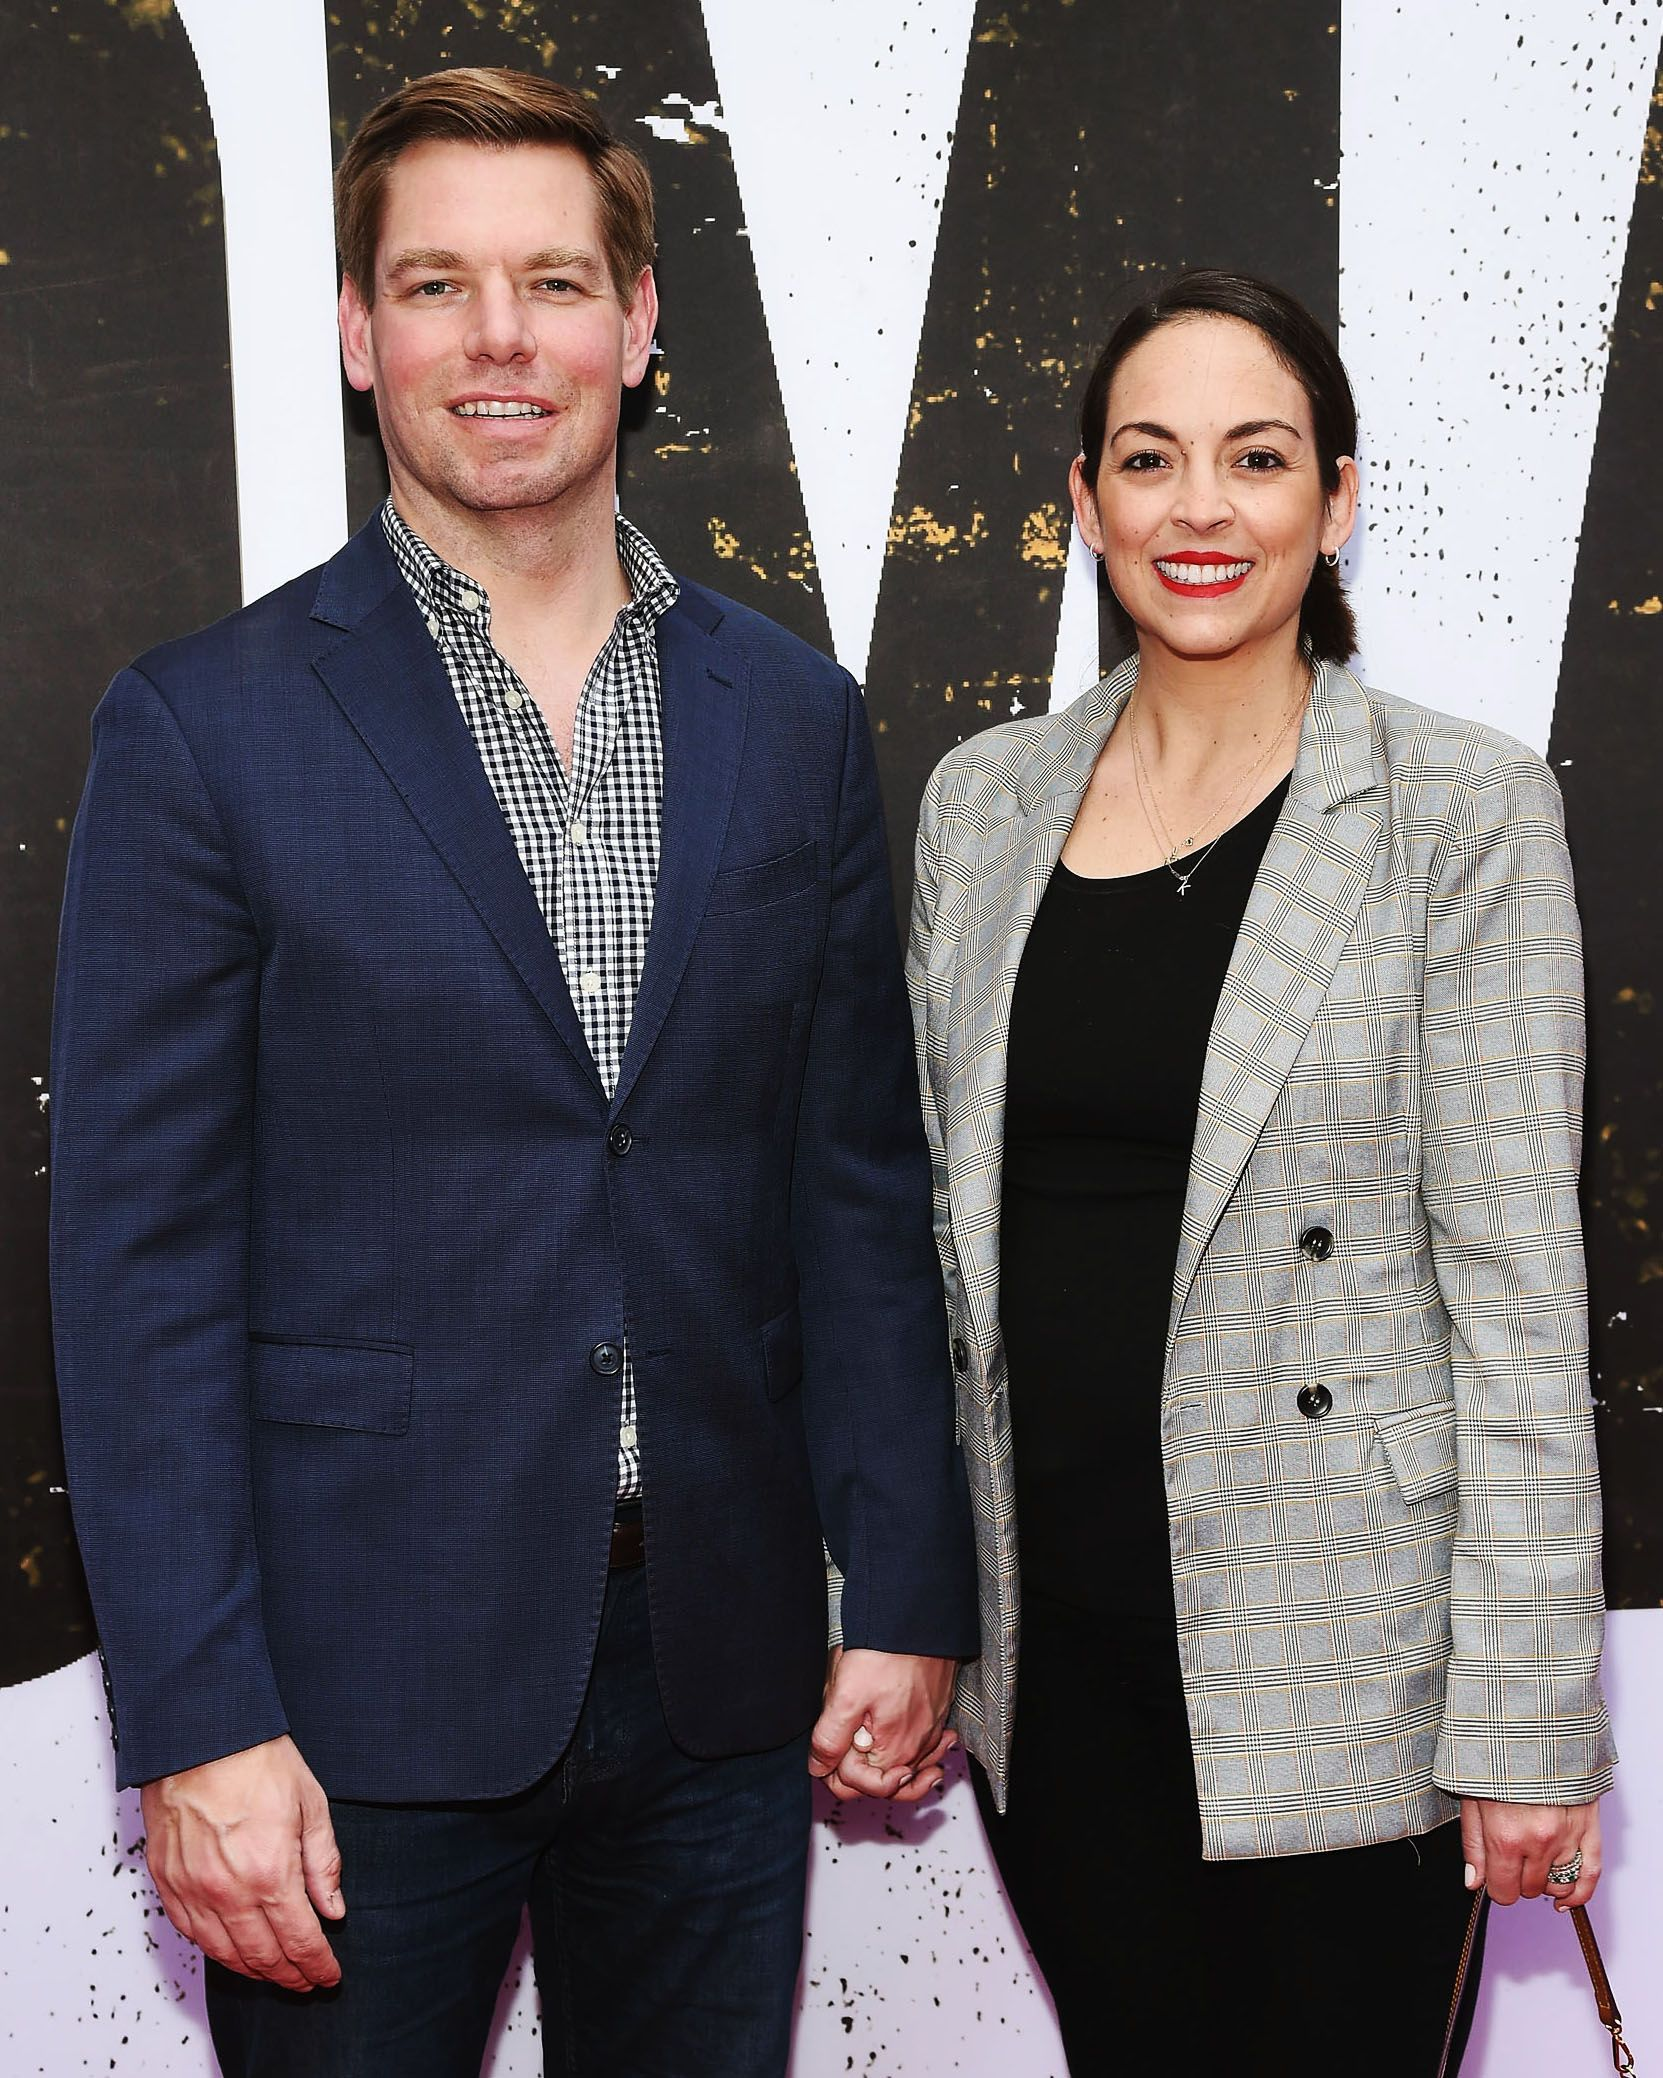 Swalwell and his wife, Brittany Watts, in New York City this month attending a performance of Oklahoma! (Alas, Rogers and Hammerstein chose not to write a musical titled Iowa!